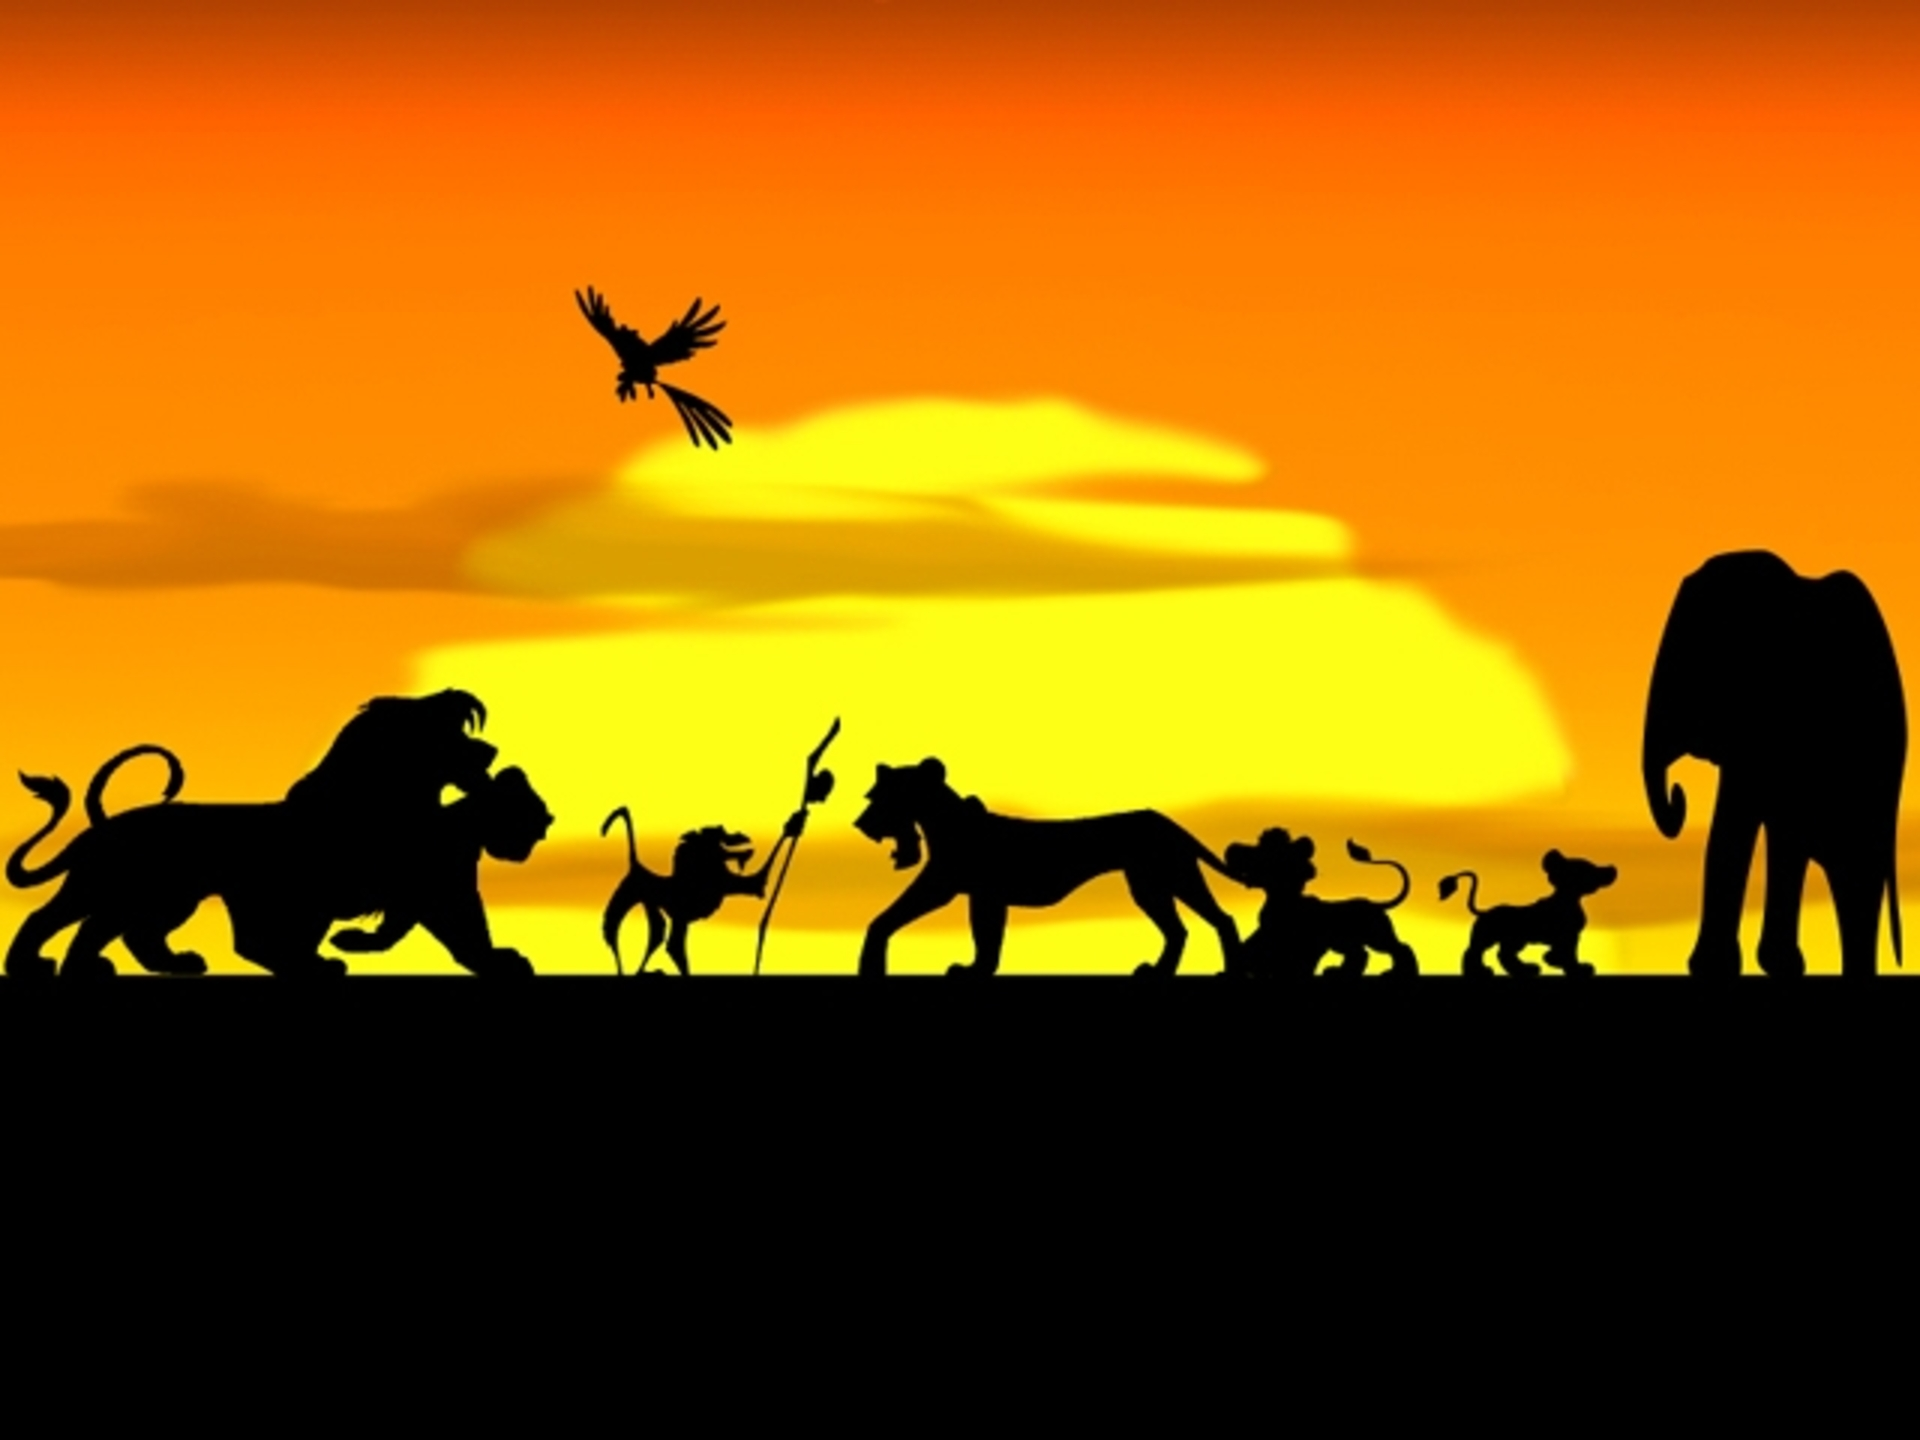 The lion king full hd wallpaper and background image - Lion king wallpaper ...